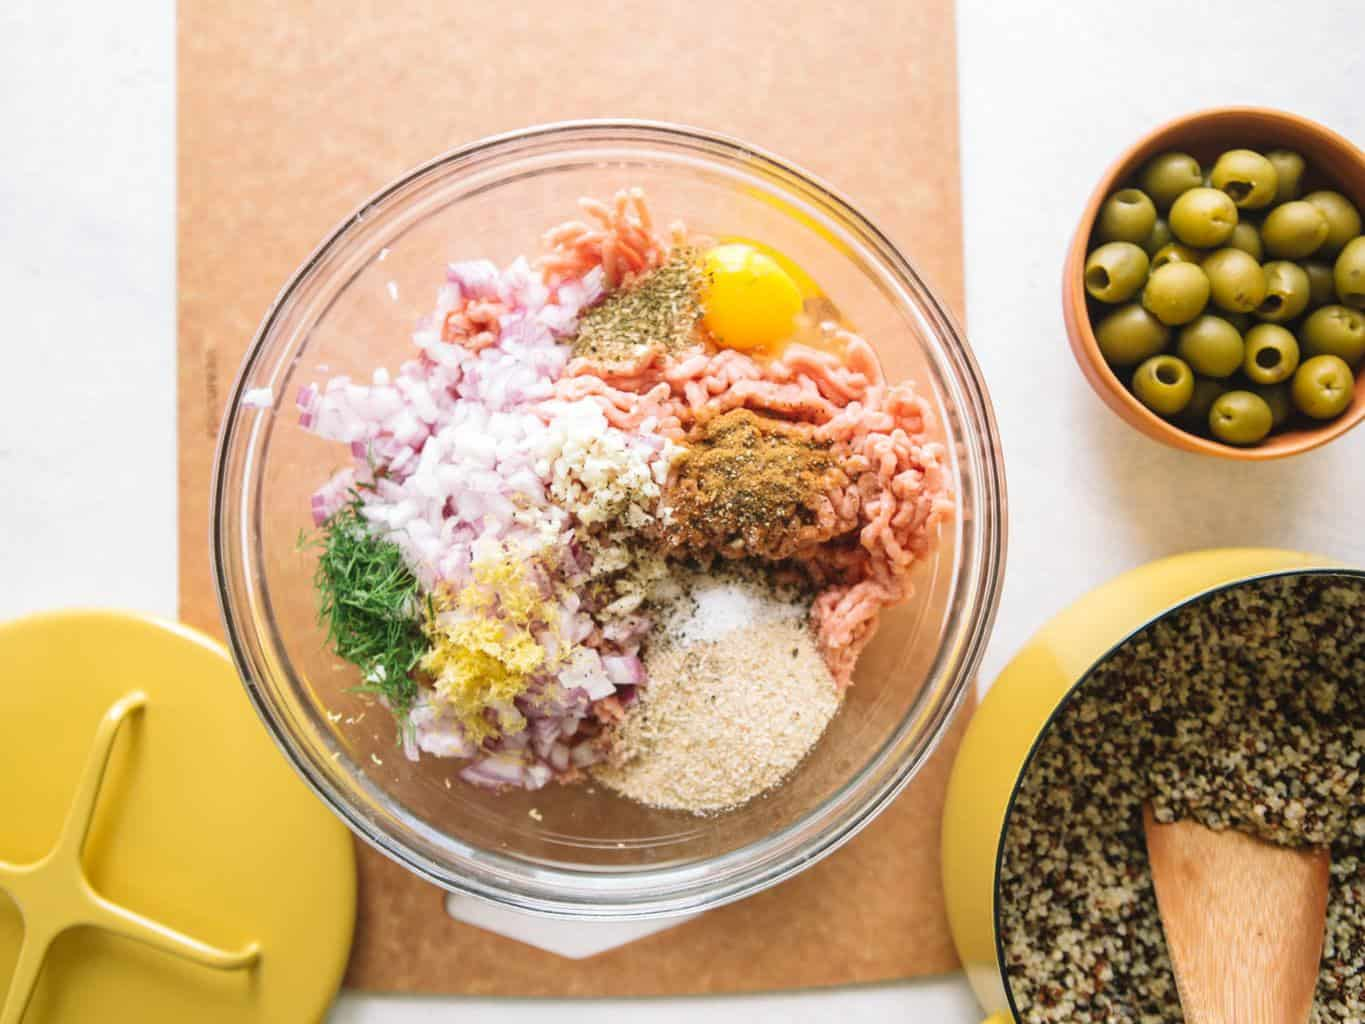 Ingredients for Greek meatballs in a clear bowl with quinoa in a yellow pot